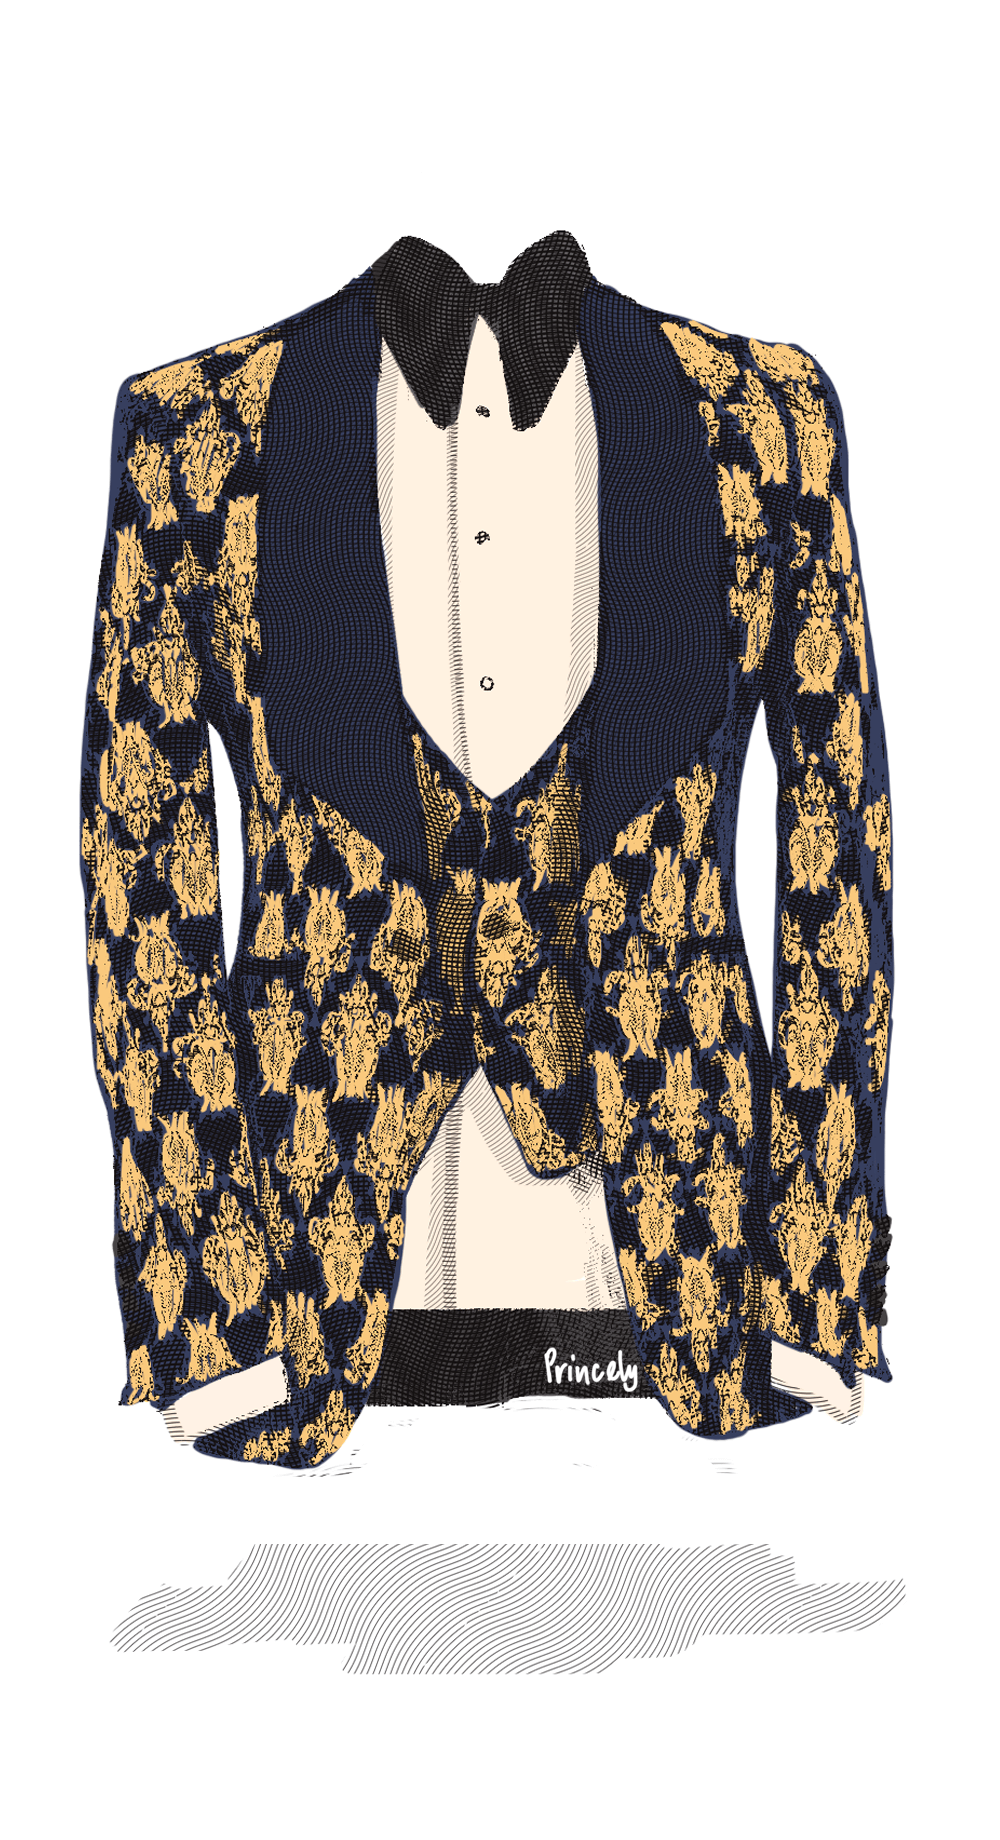 Tuxedos & Dinner Jackets - Princely Suits | Indian Wedding Suits Australia